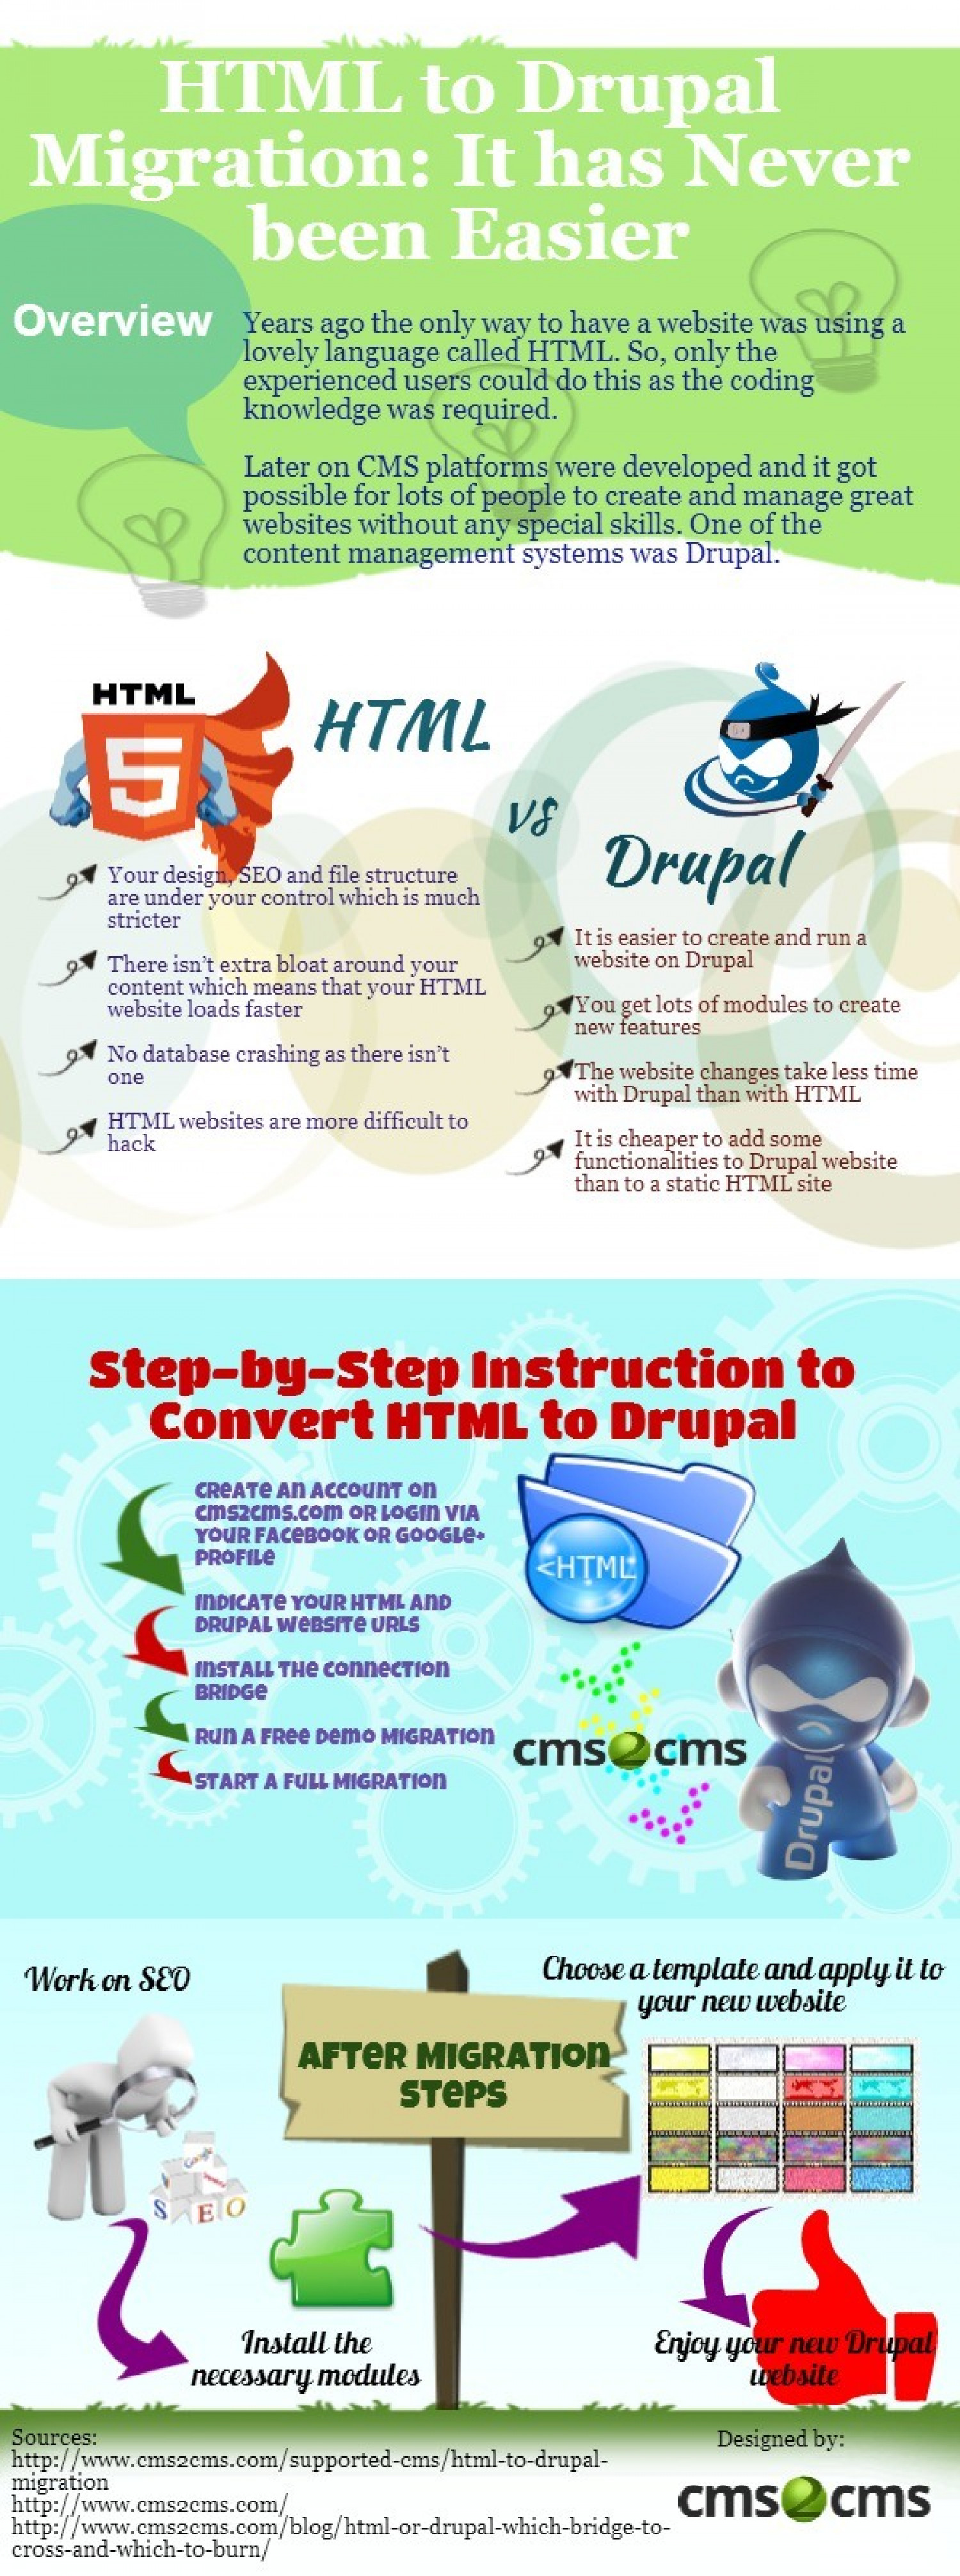 HTML to Drupal Migration: It has Never been Easier Infographic